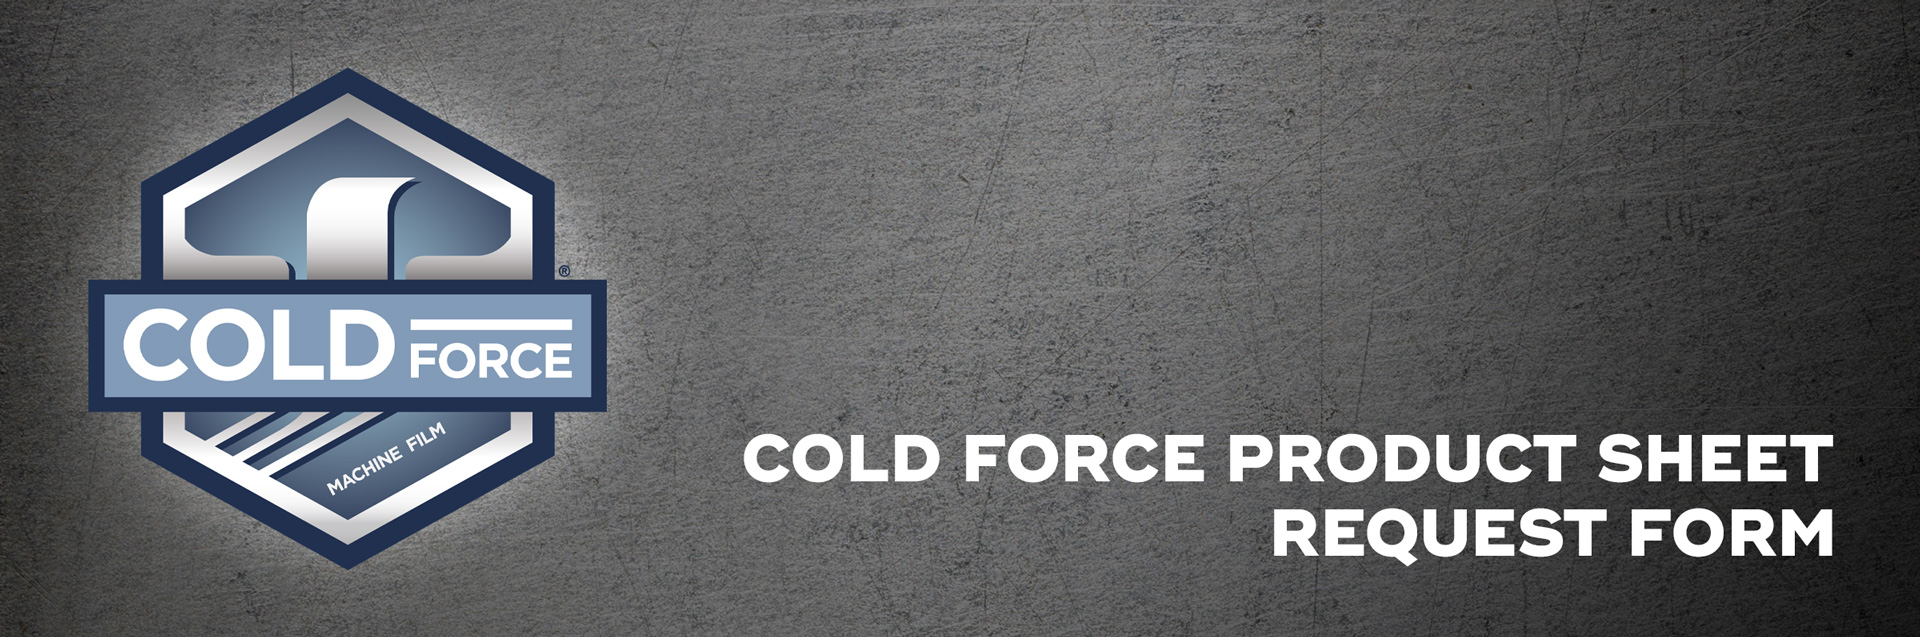 Cold-Force-Product-Sheet-Request-Form